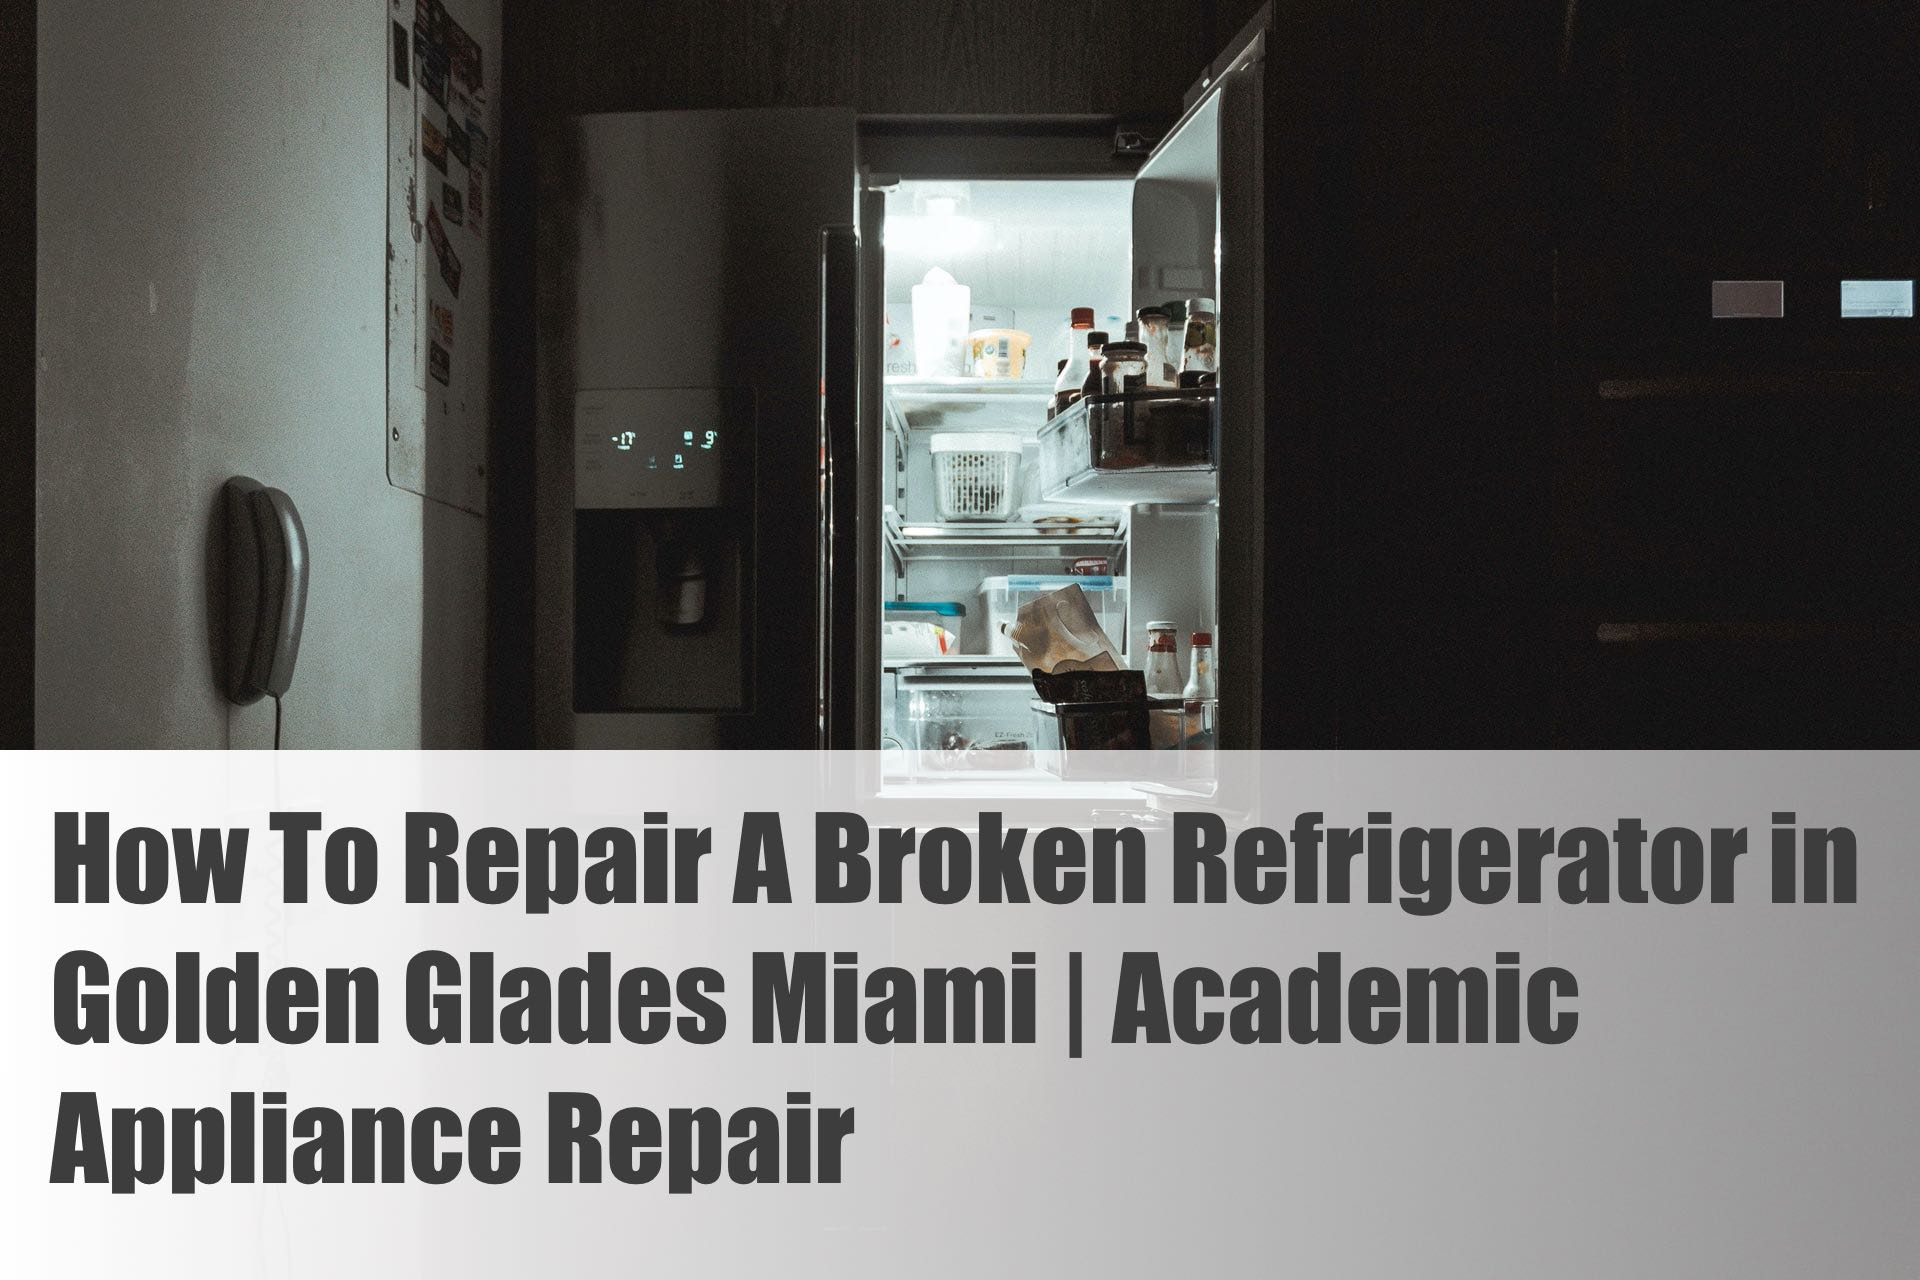 How To Repair A Broken Refrigerator in Golden Glades Miami | Academic Appliance Repair